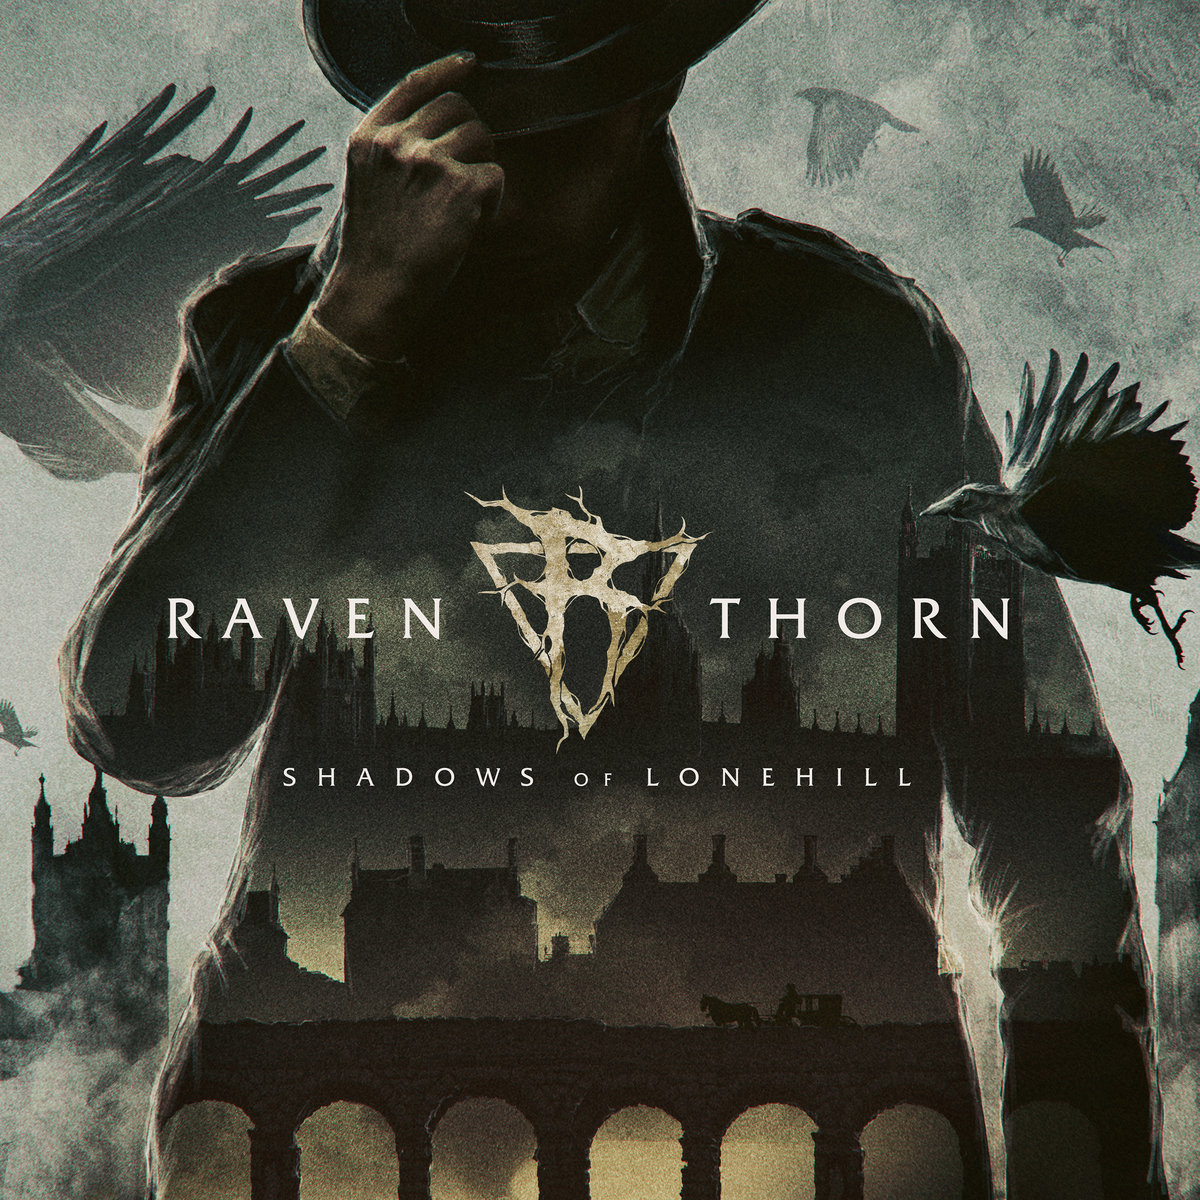 Raventhorn - Shadows of Lonehill - album cove